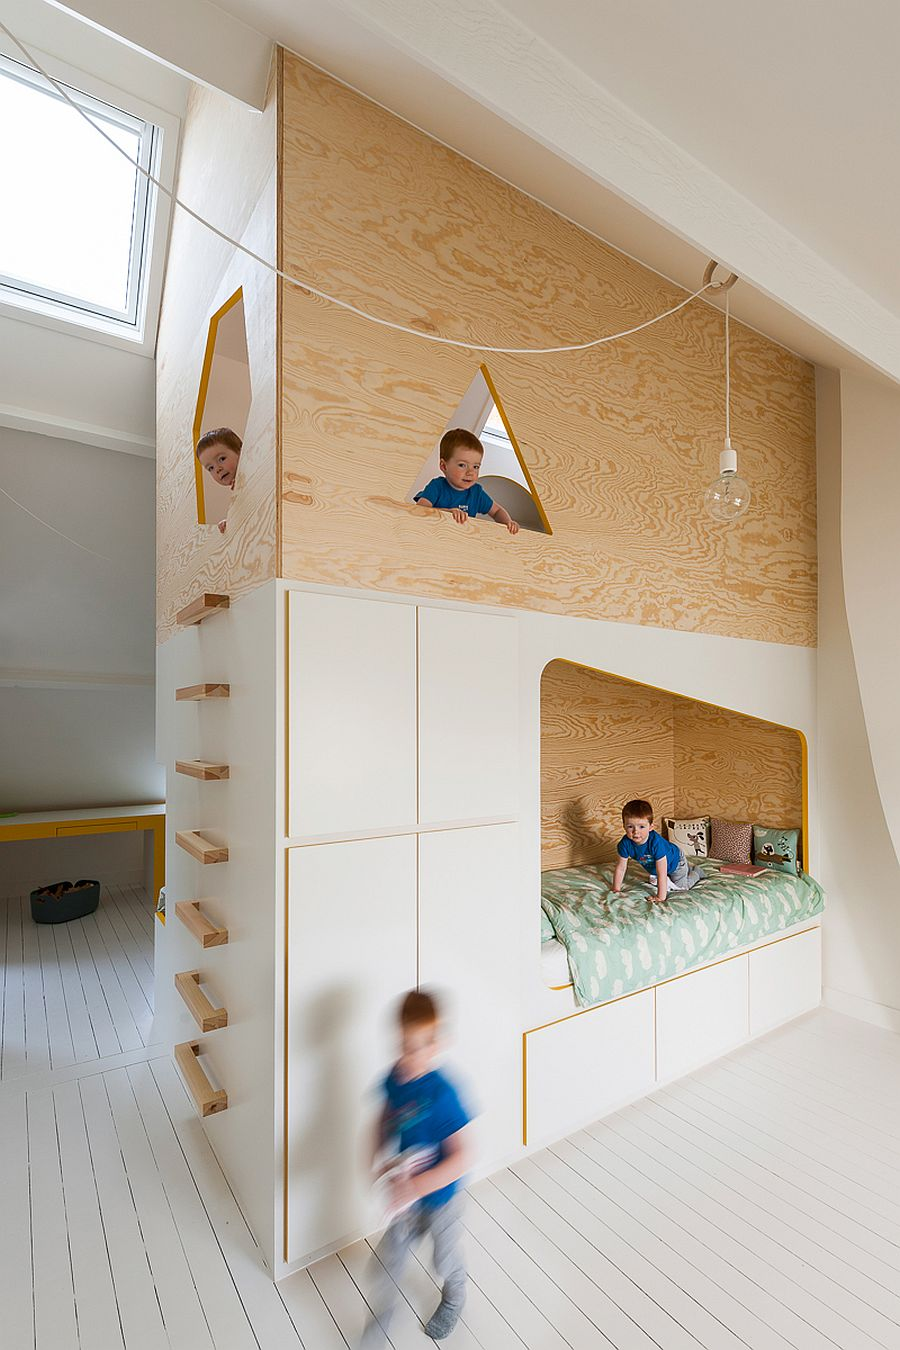 Bespoke beds and niches created in the loft kids' bedroom